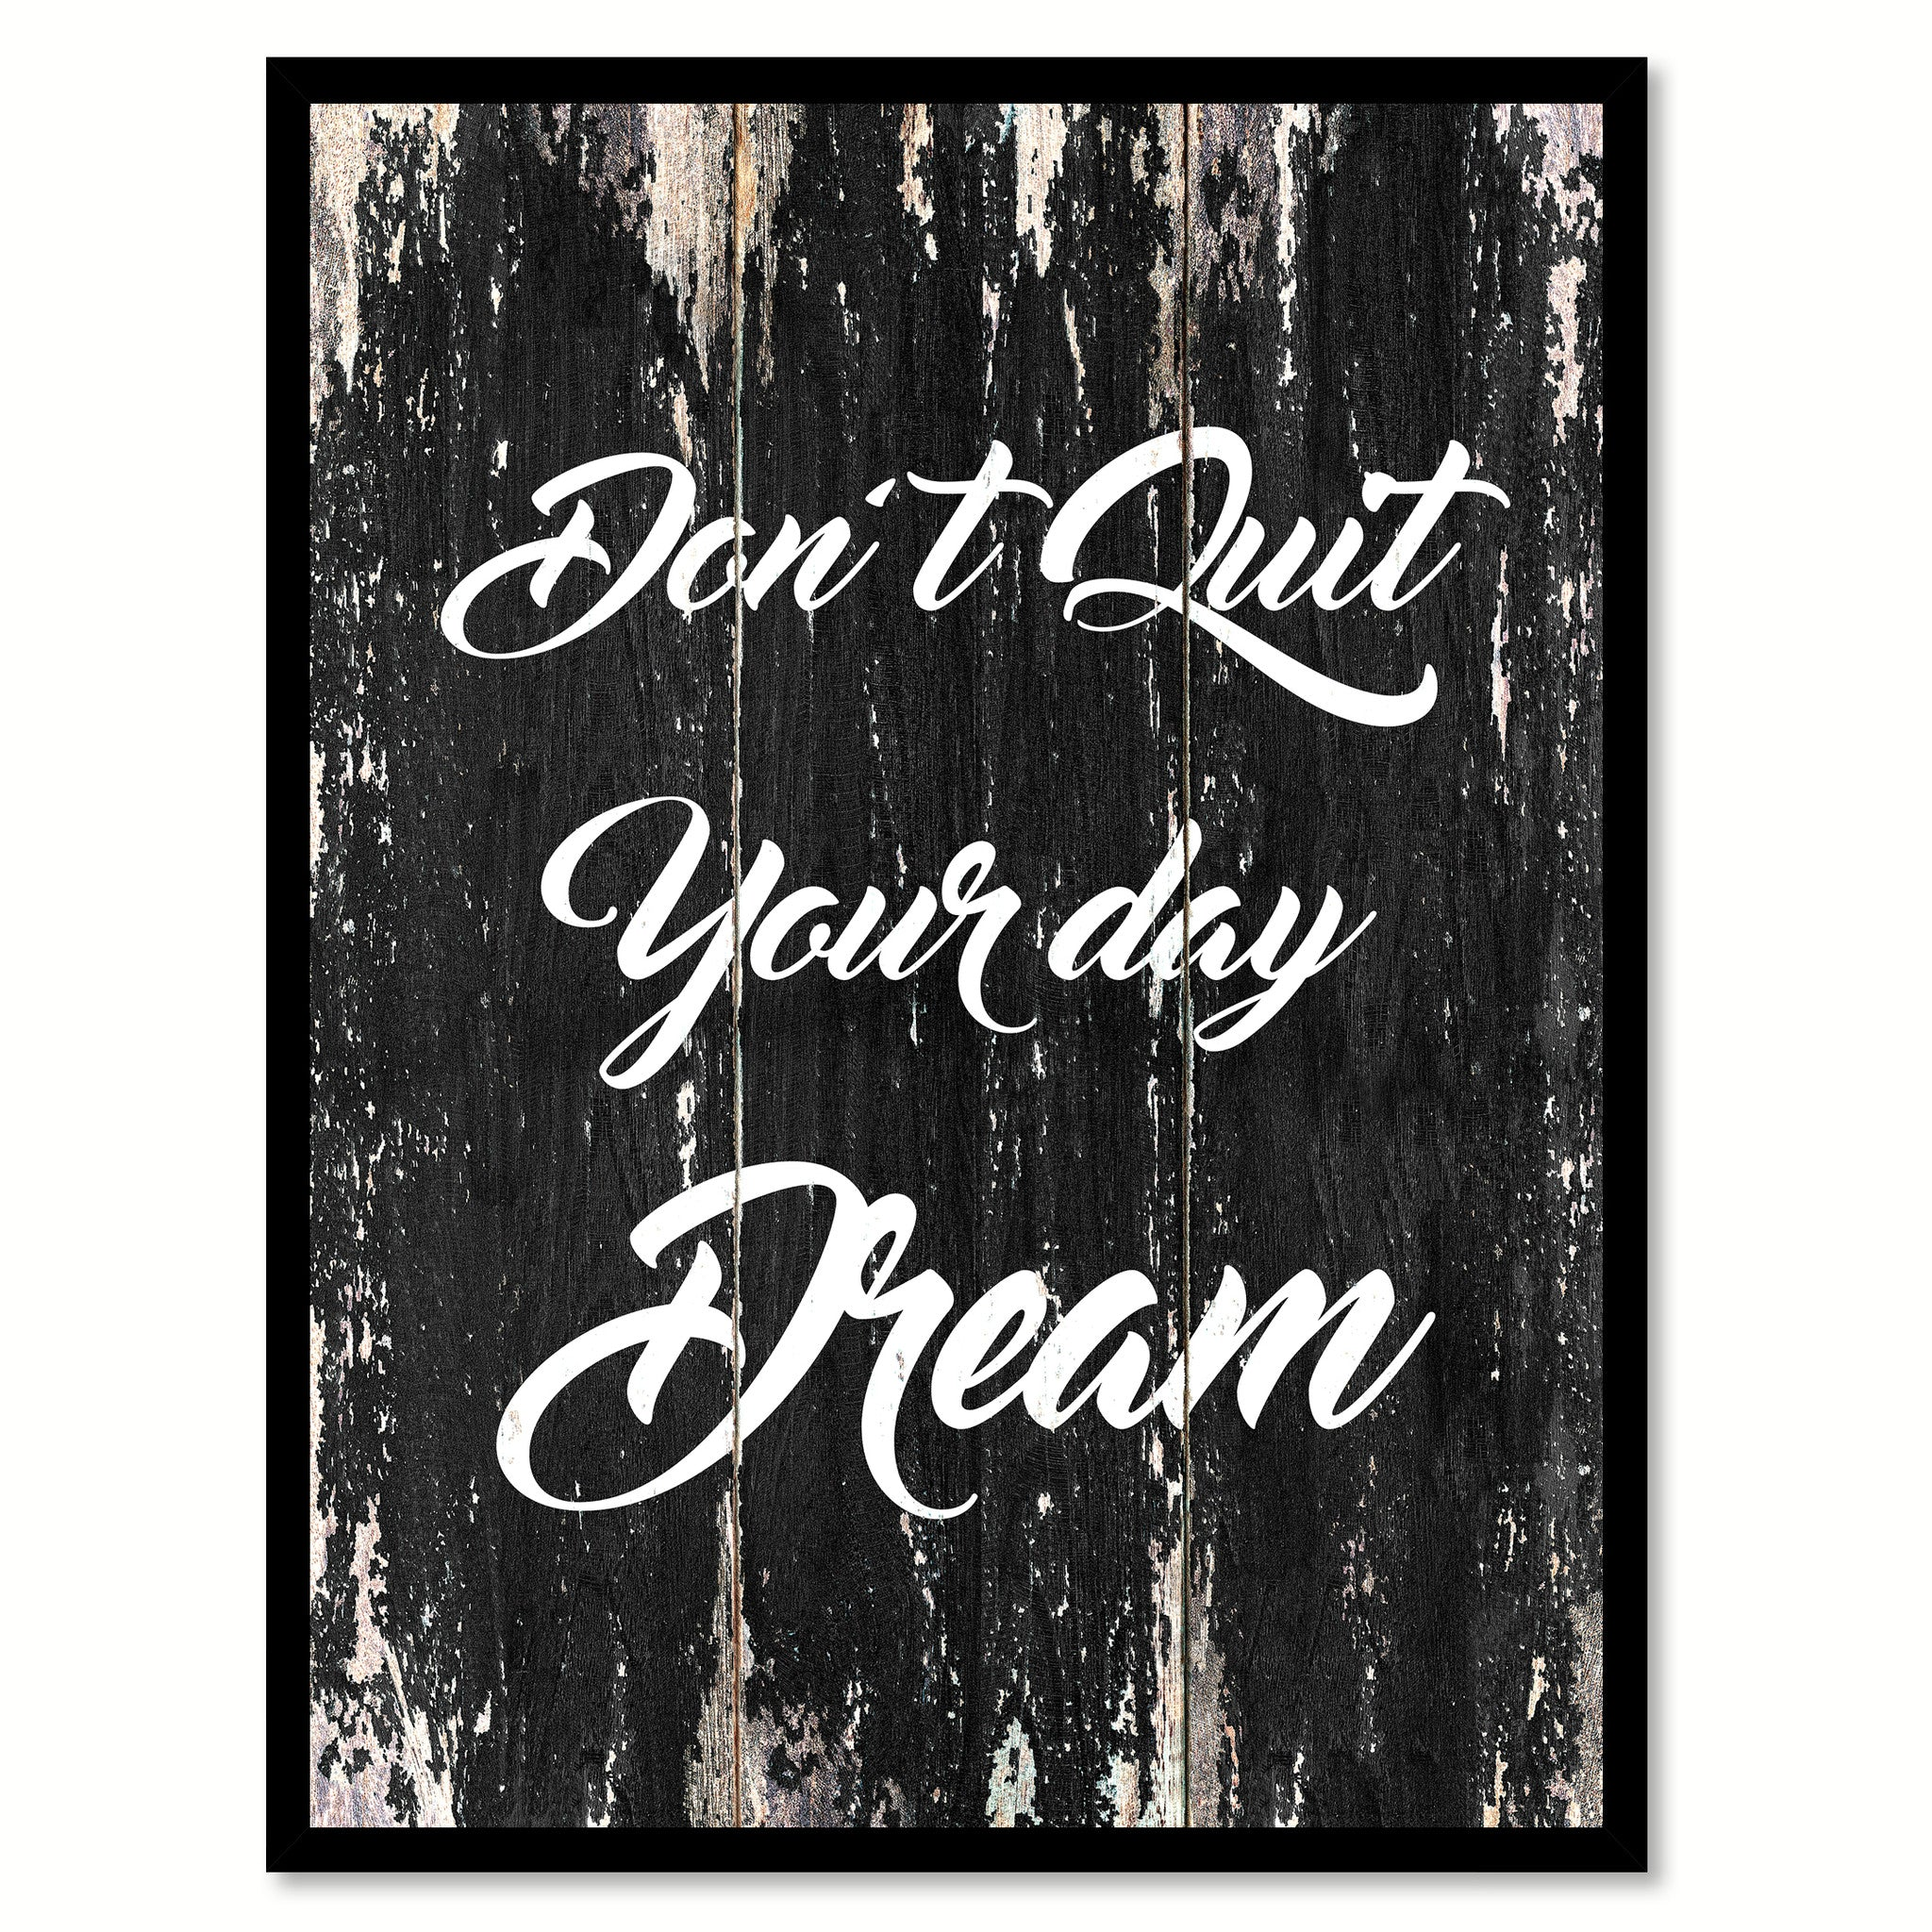 Don't quit your day dream Motivational Quote Saying Canvas Print with Picture Frame Home Decor Wall Art